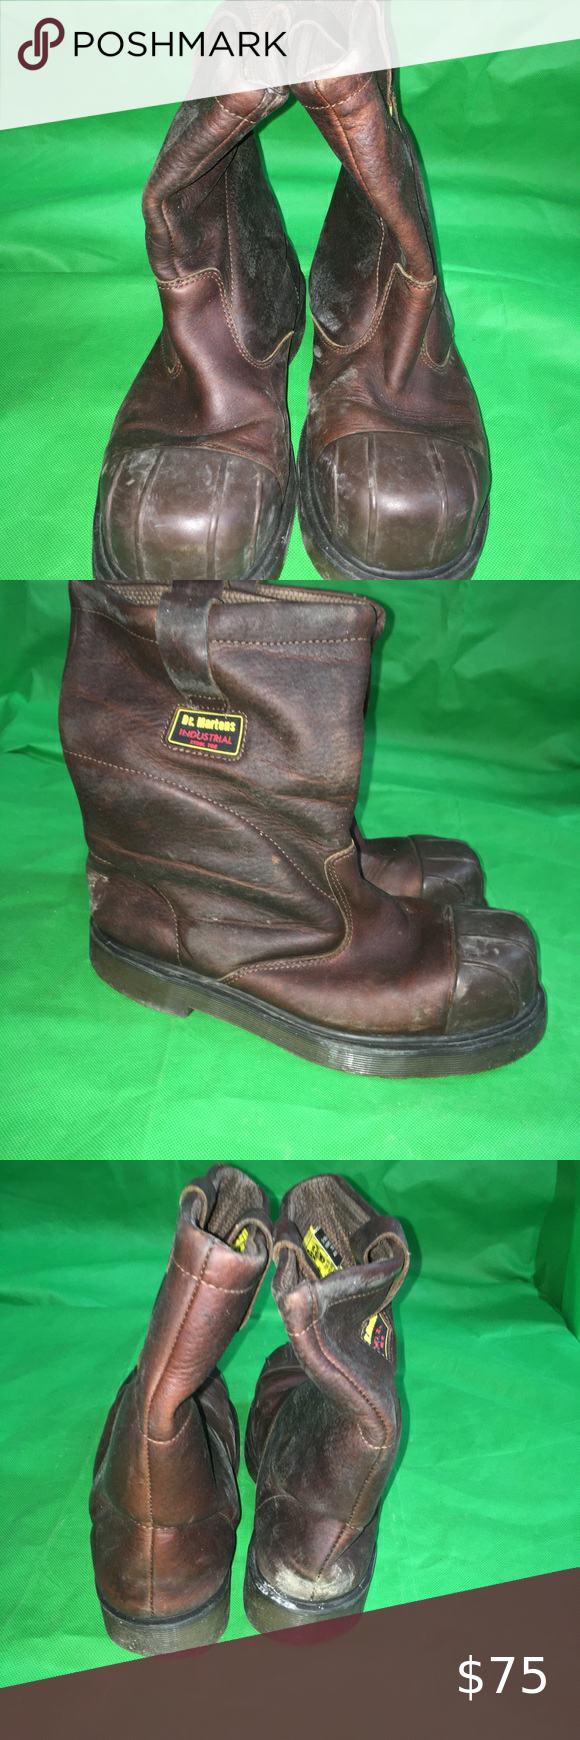 Safety Boots Green Triangle